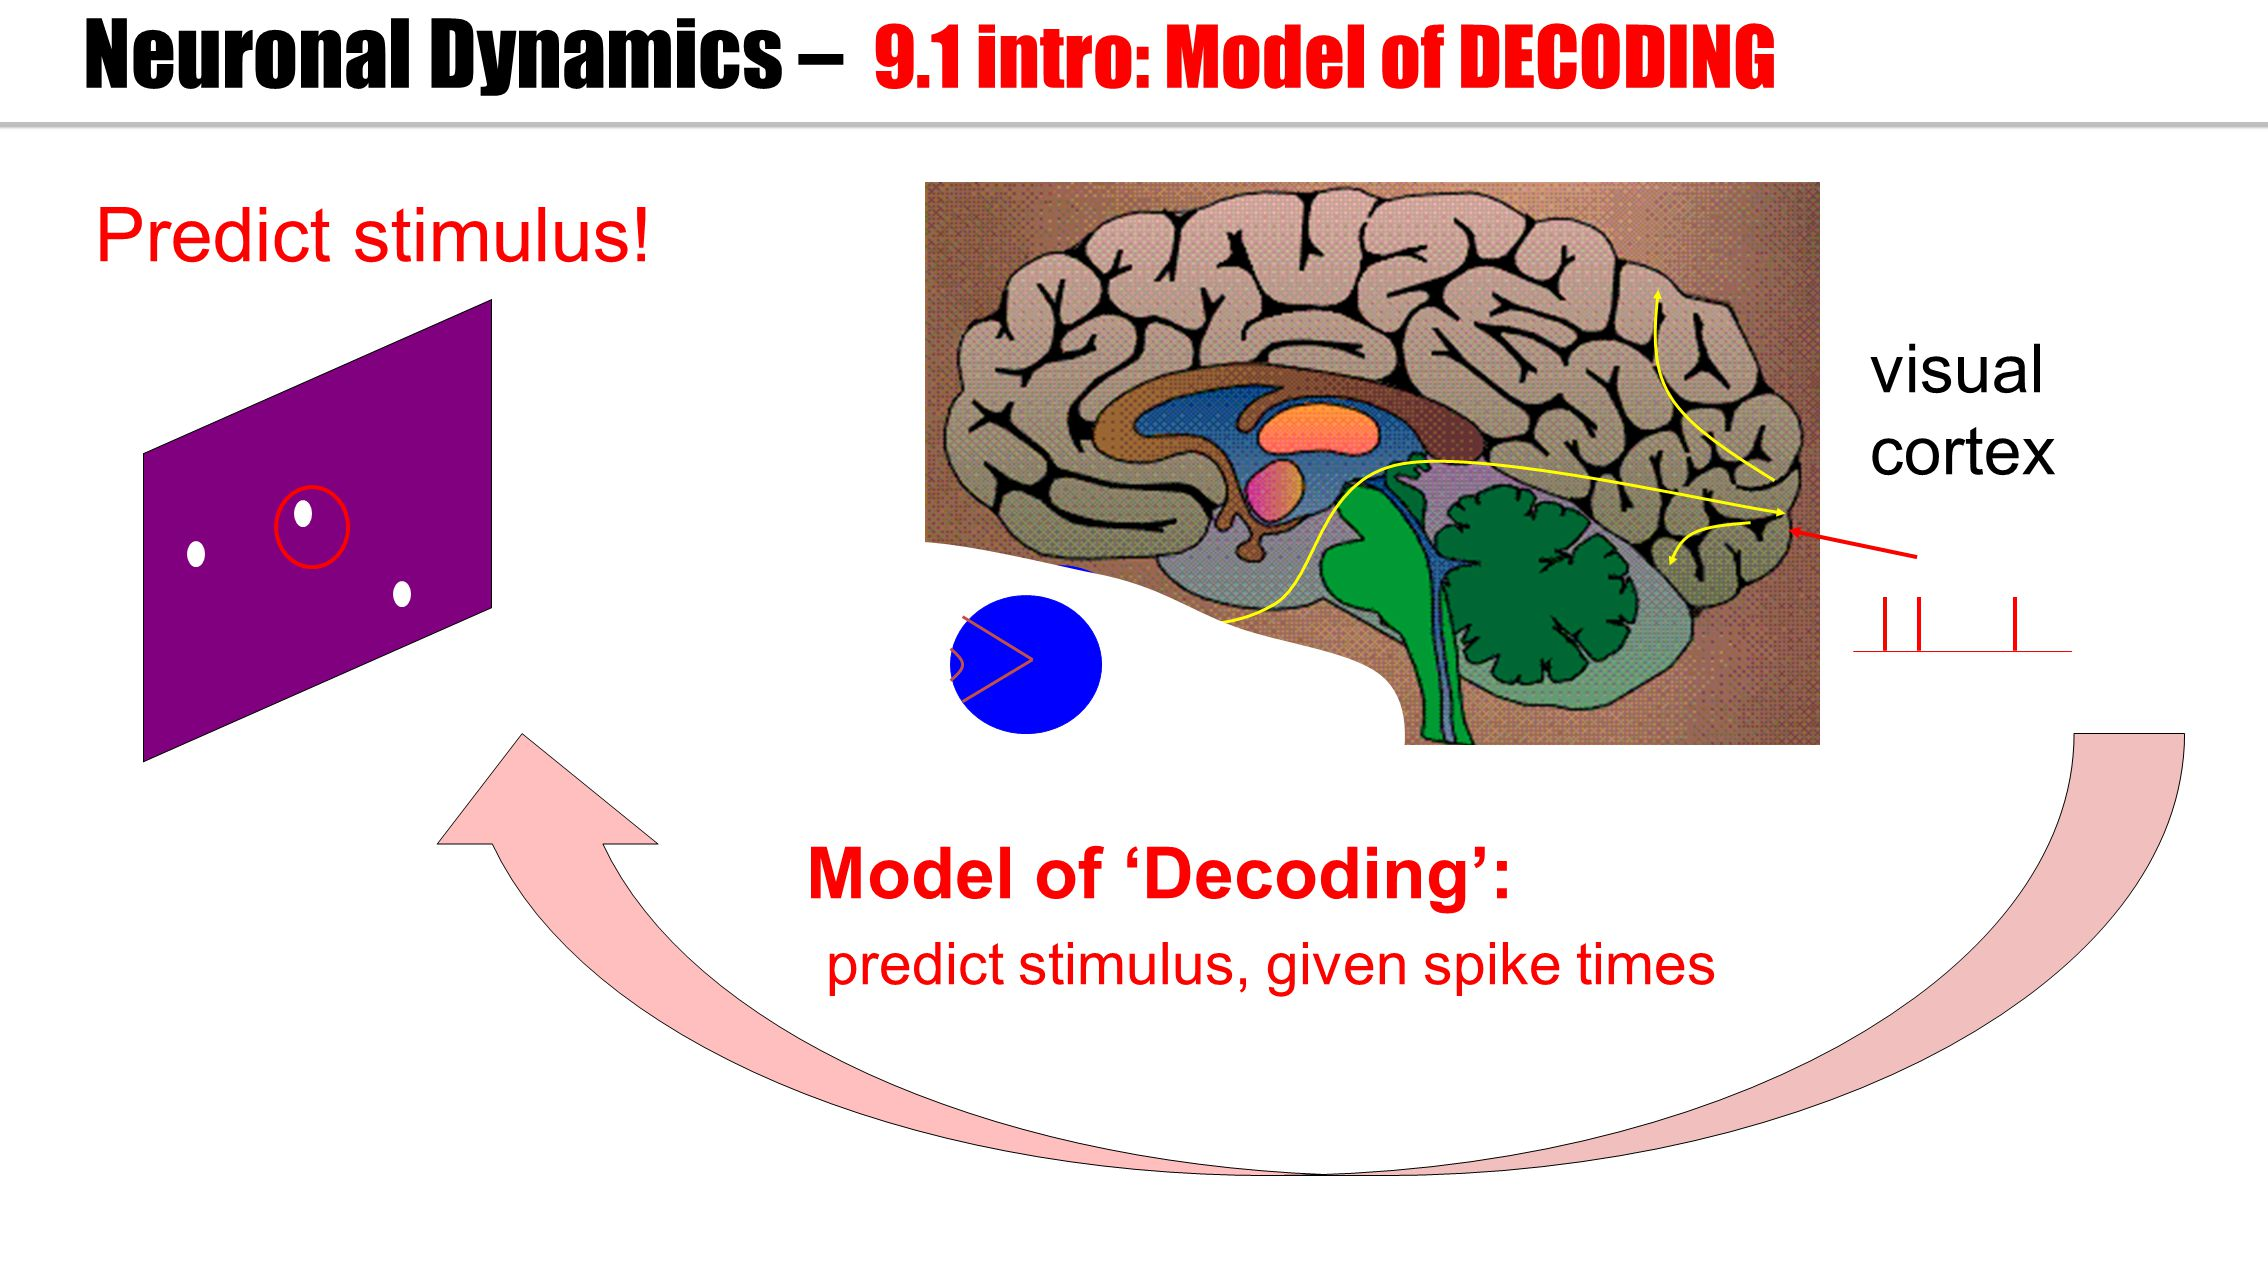 visual cortex Model of 'Decoding': predict stimulus, given spike times Neuronal Dynamics – 9.1 intro: Model of DECODING Predict stimulus!